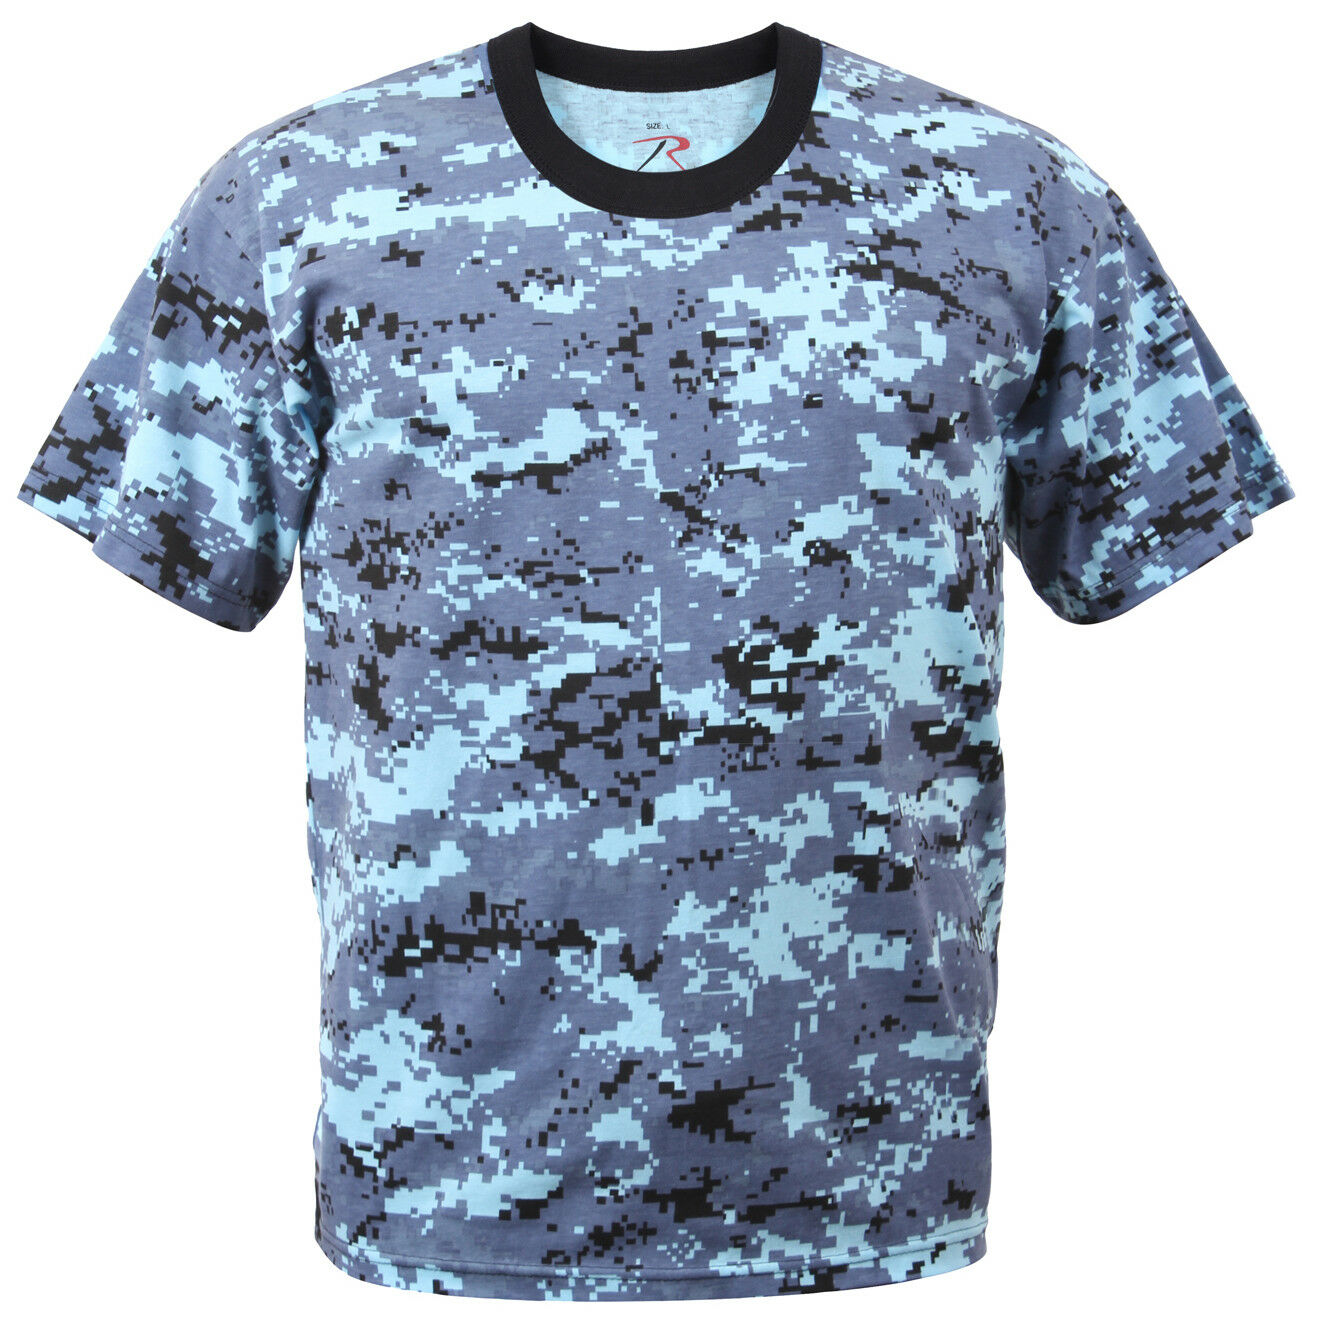 bluee Camo T-shirt Sky bluee Digital Camouflage Cotton Polyester Blend redhco 8947